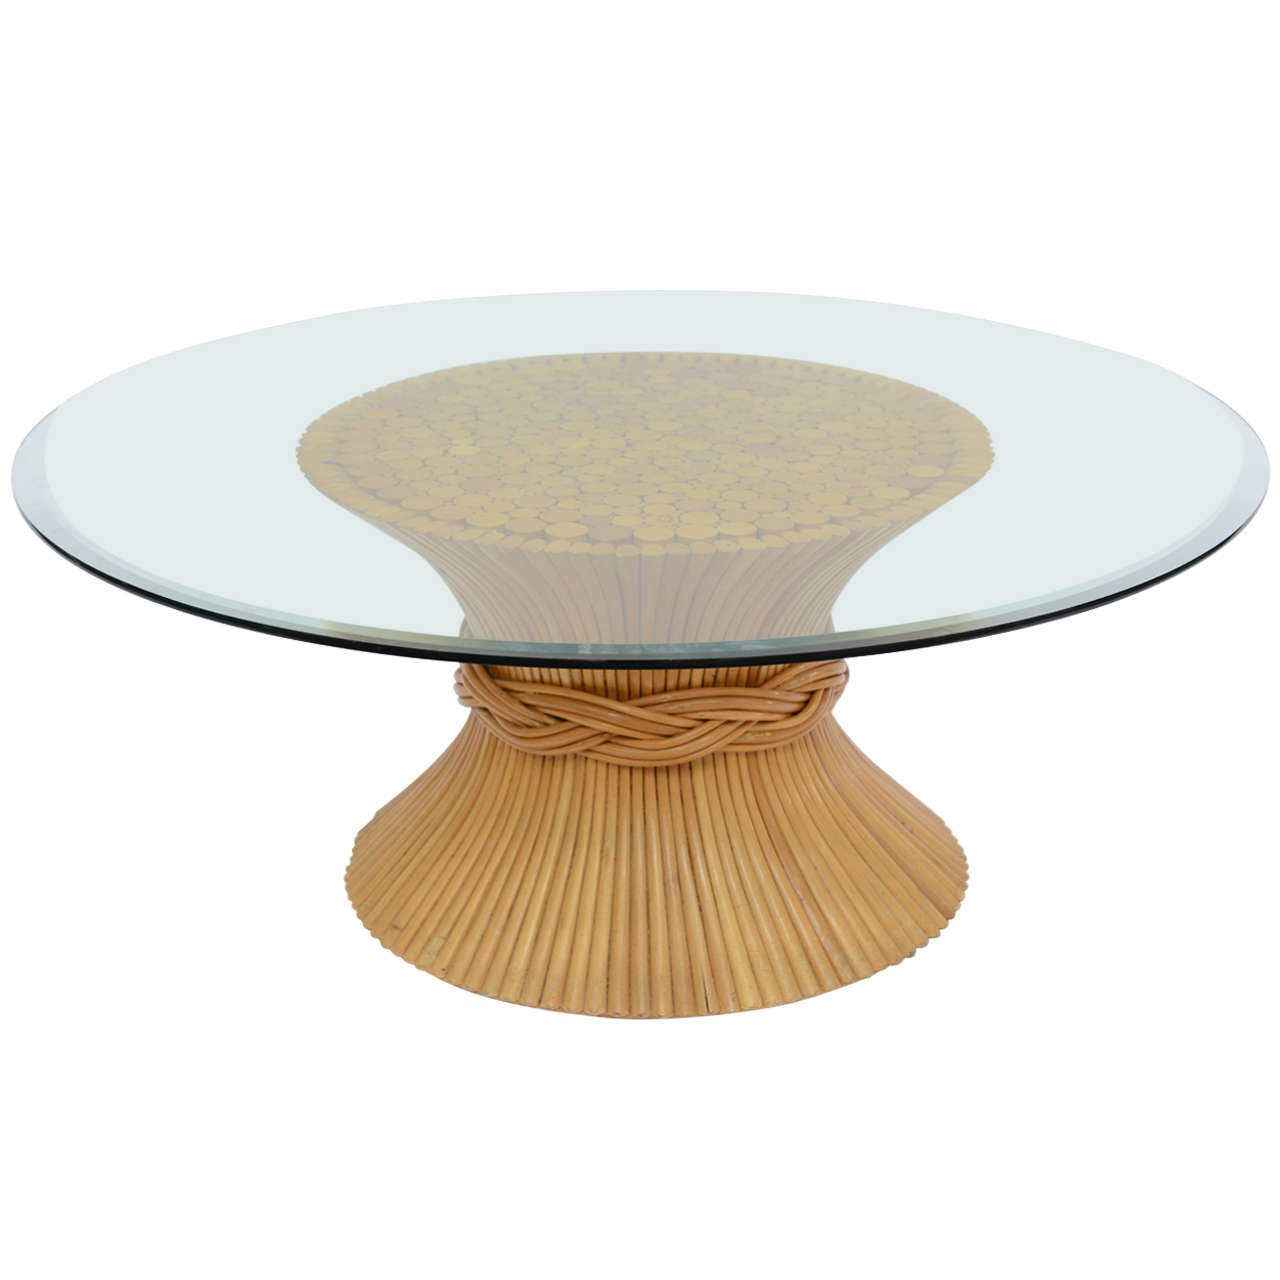 Vintage mcguire sheaf of wheat rattan coffee table at 1stdibs vintage mcguire sheaf of wheat rattan coffee table 1 geotapseo Images